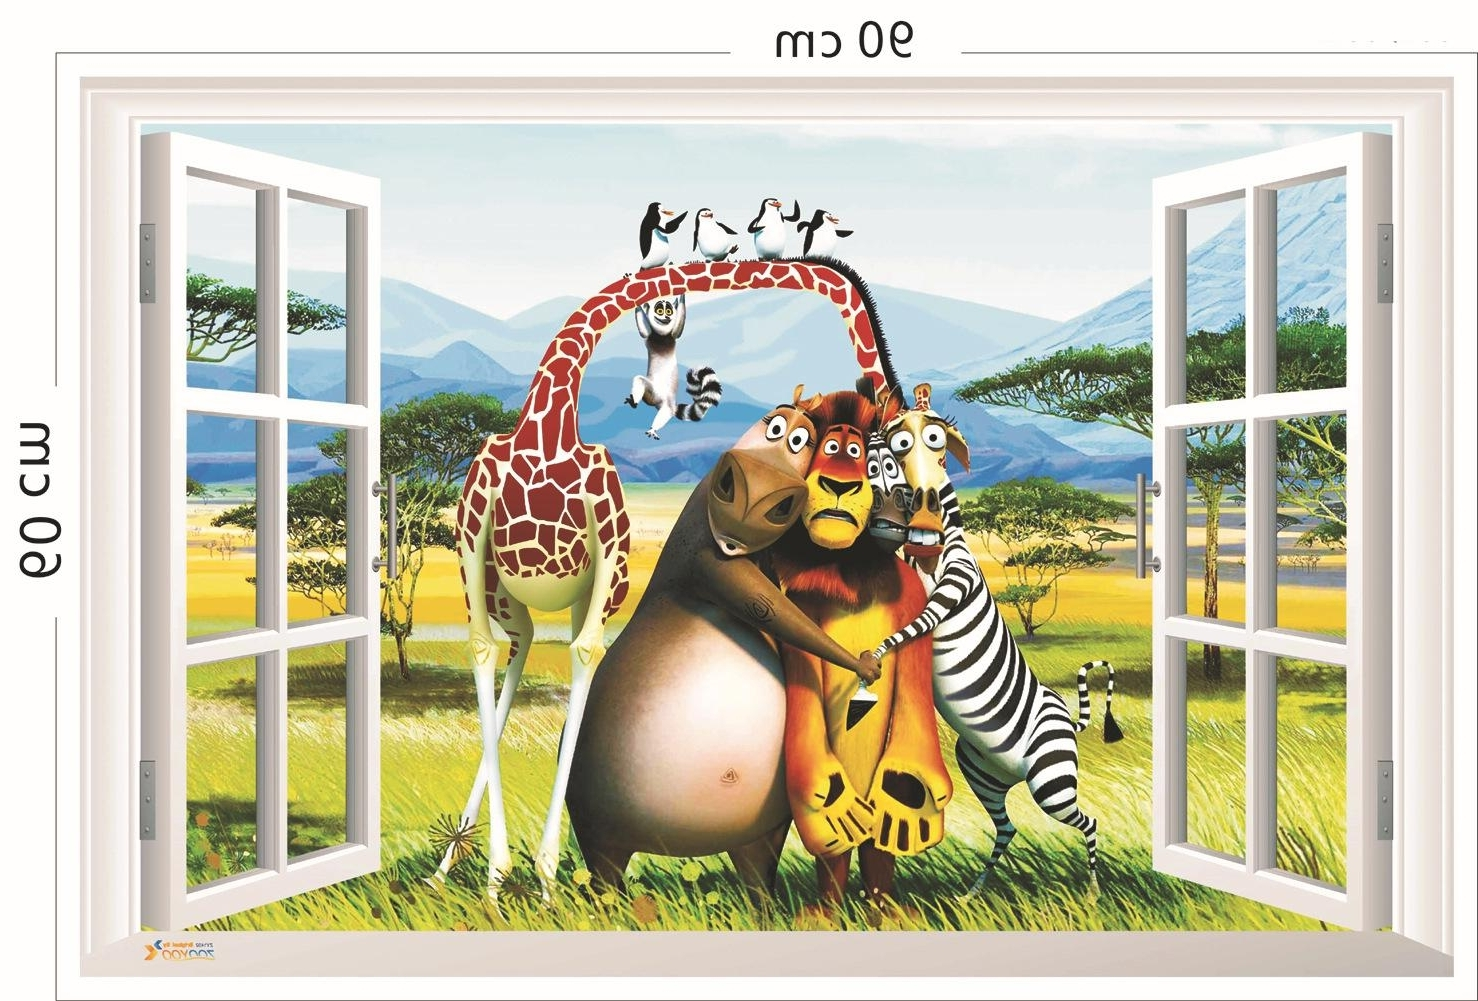 Famous Zebra 3D Wall Art Intended For 3D Window View Animals Forest Wall Art Mural Decal Sticker Cartoon (View 3 of 15)